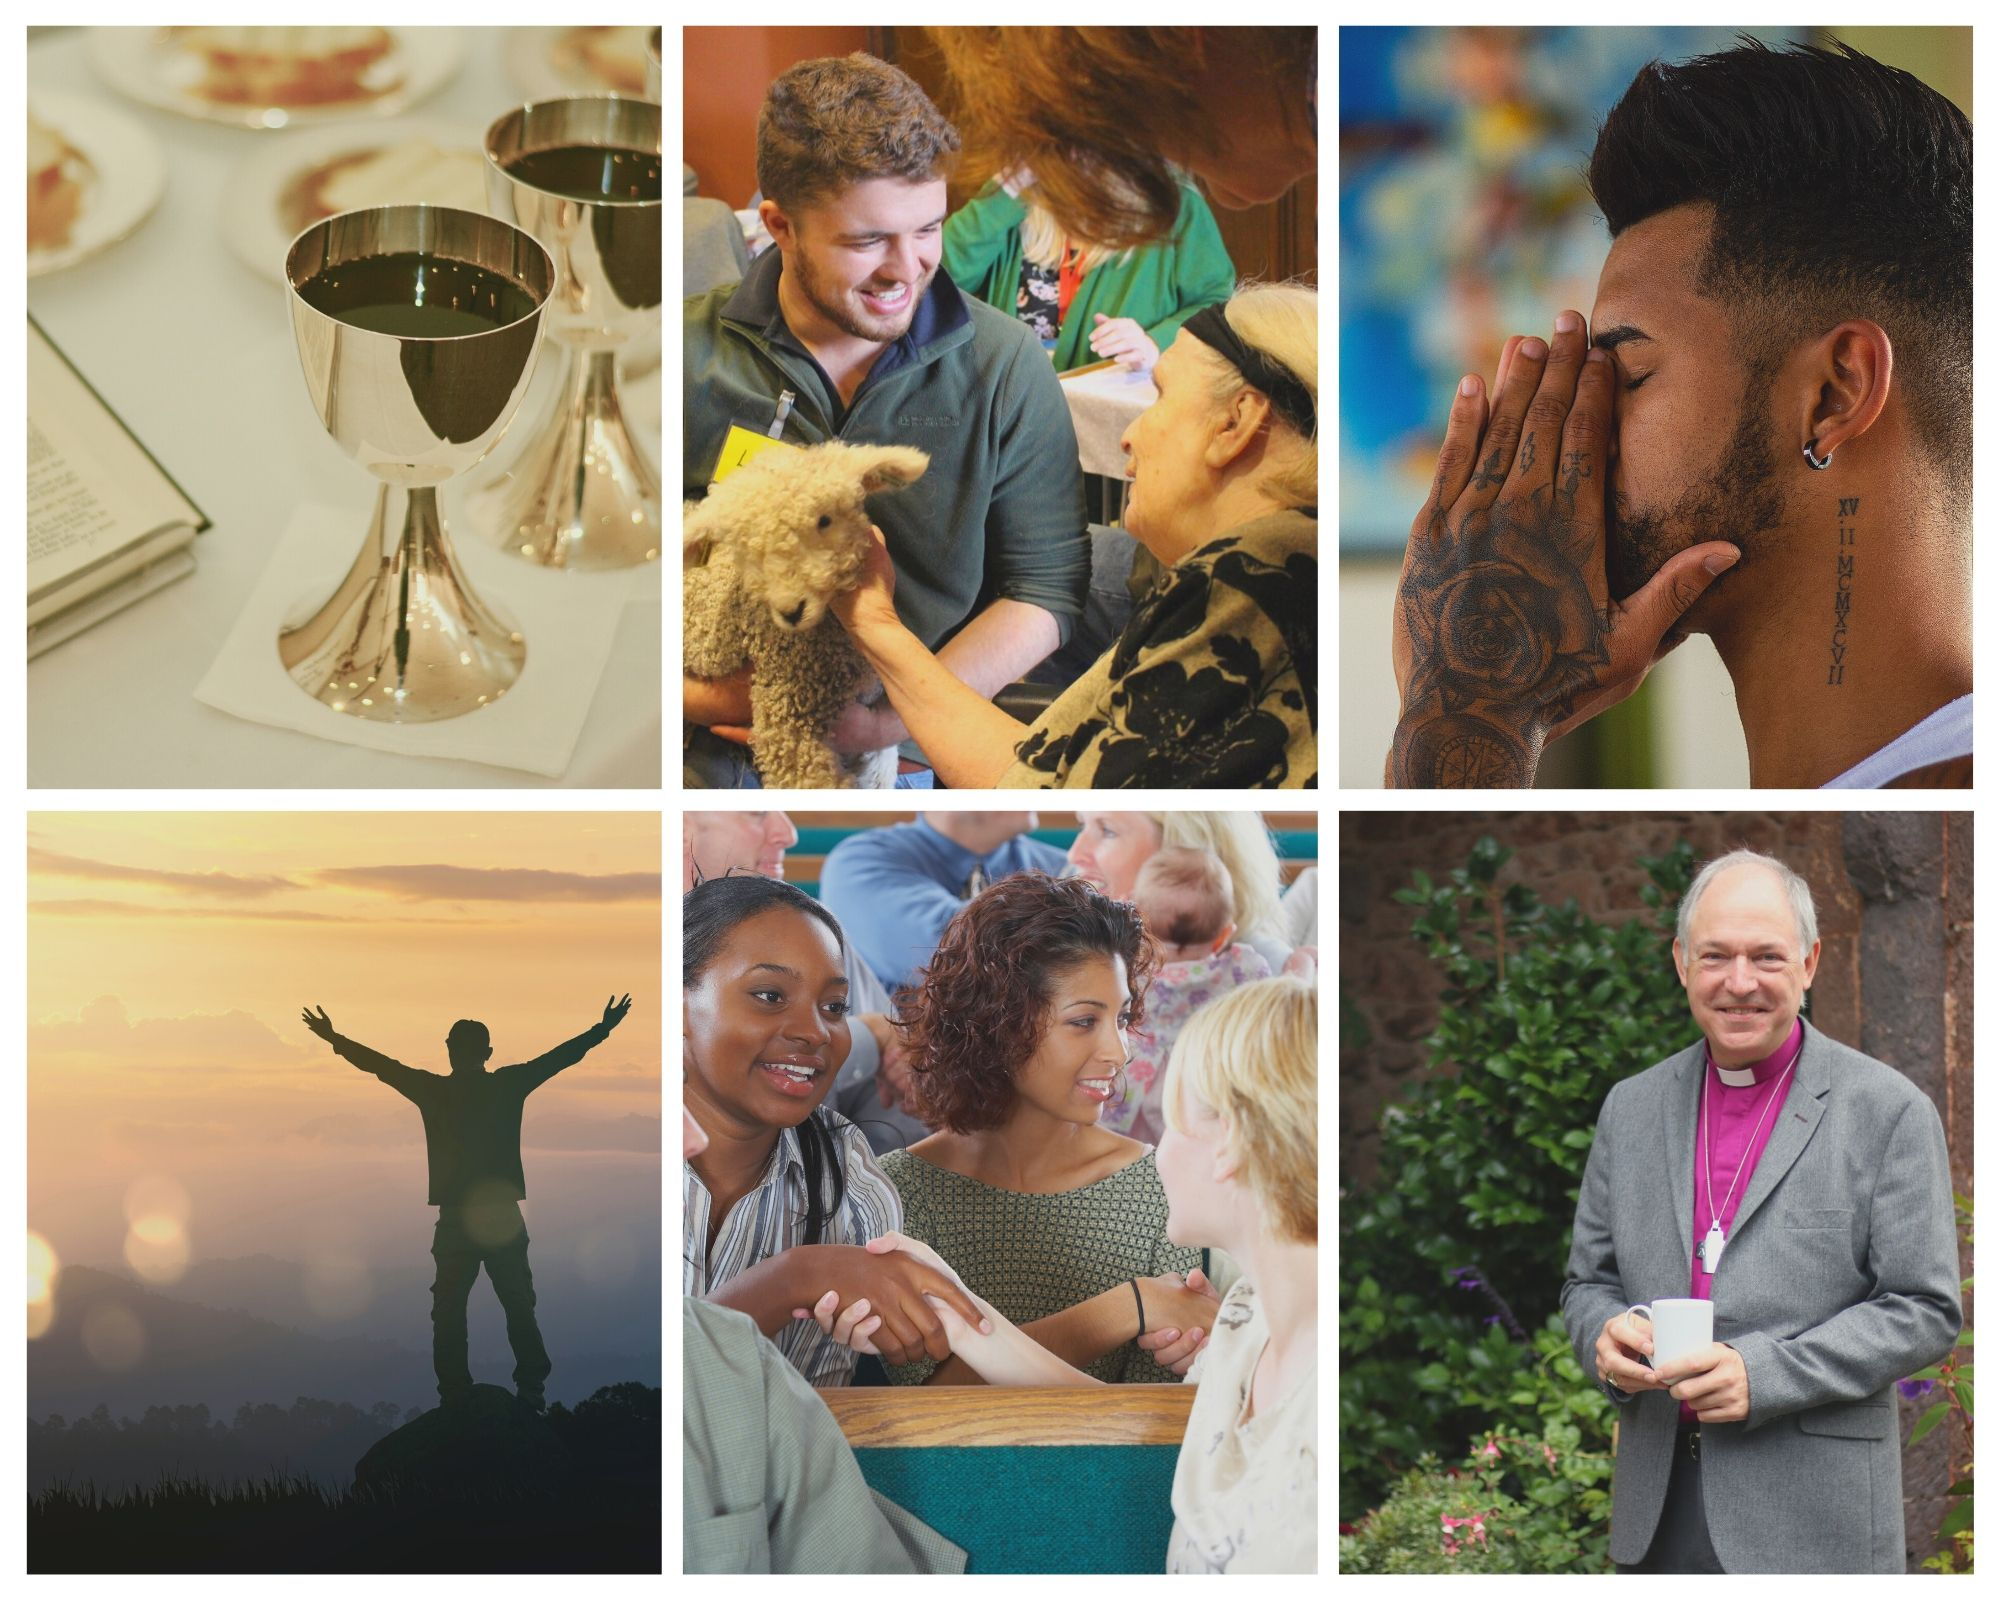 A collage of images showing a communion cup, a man praying and some women chatting in church